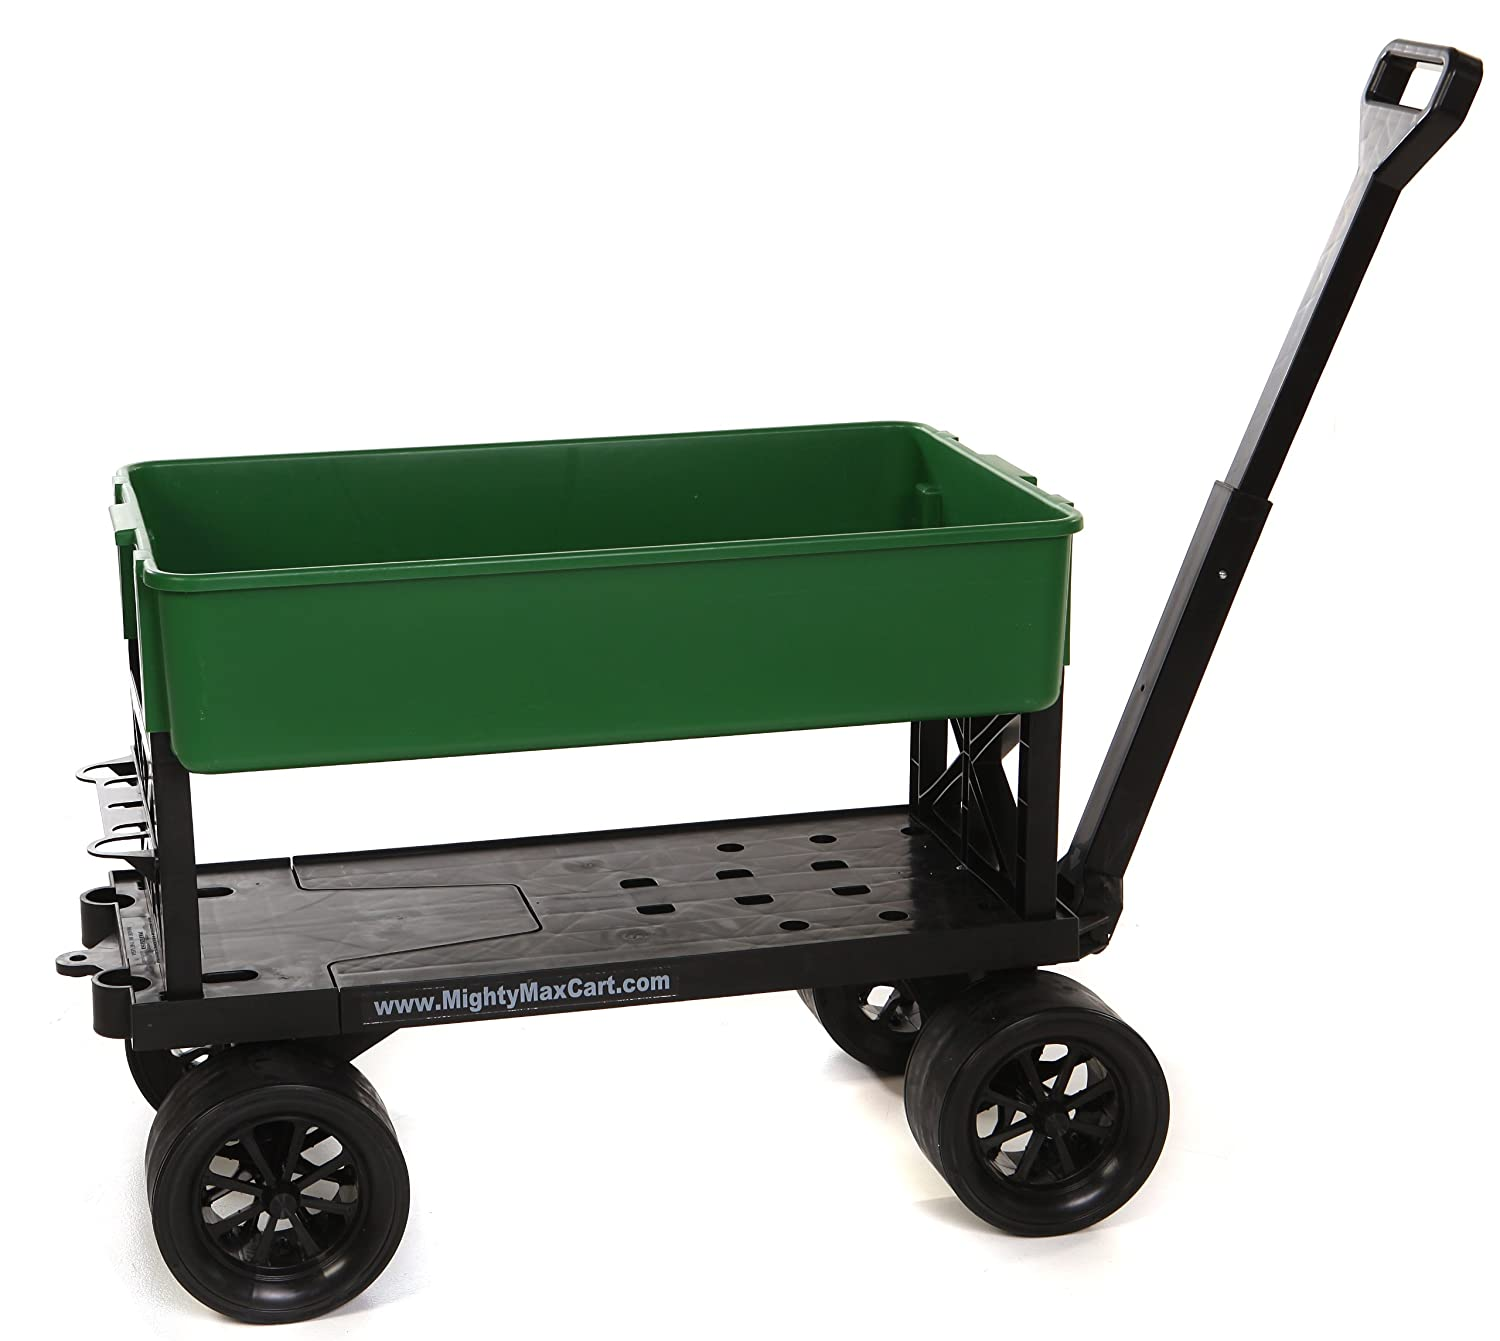 Amazoncom Mighty Max Cart AllPurpose Utility and Garden Cart